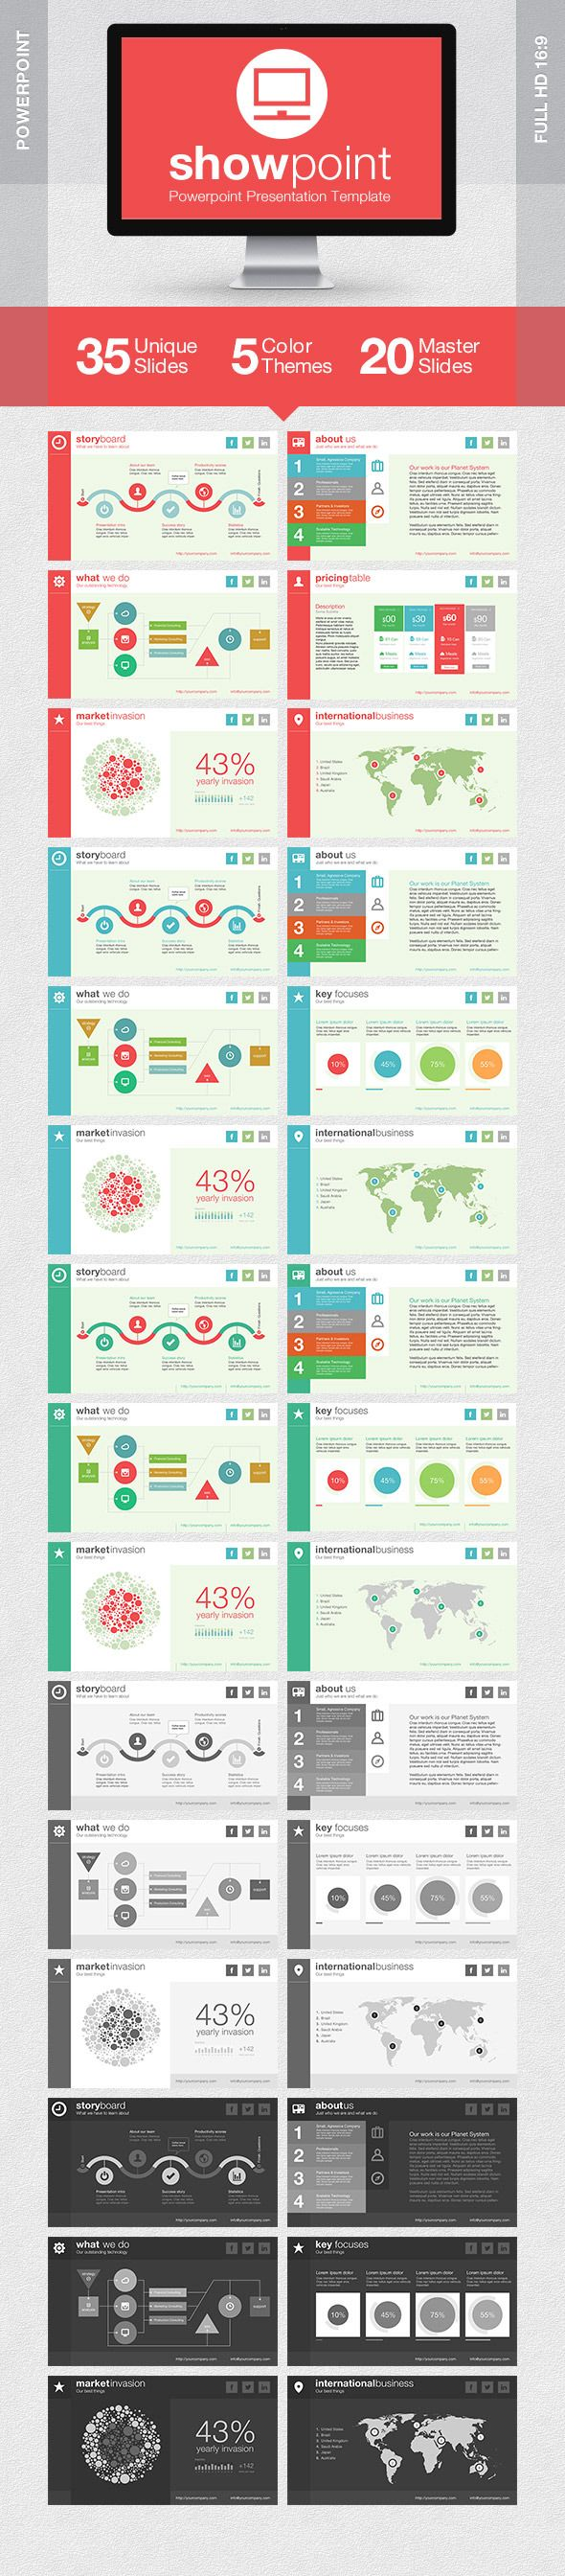 ShowPoint Powerpoint Presentation Template - Presentation Templates